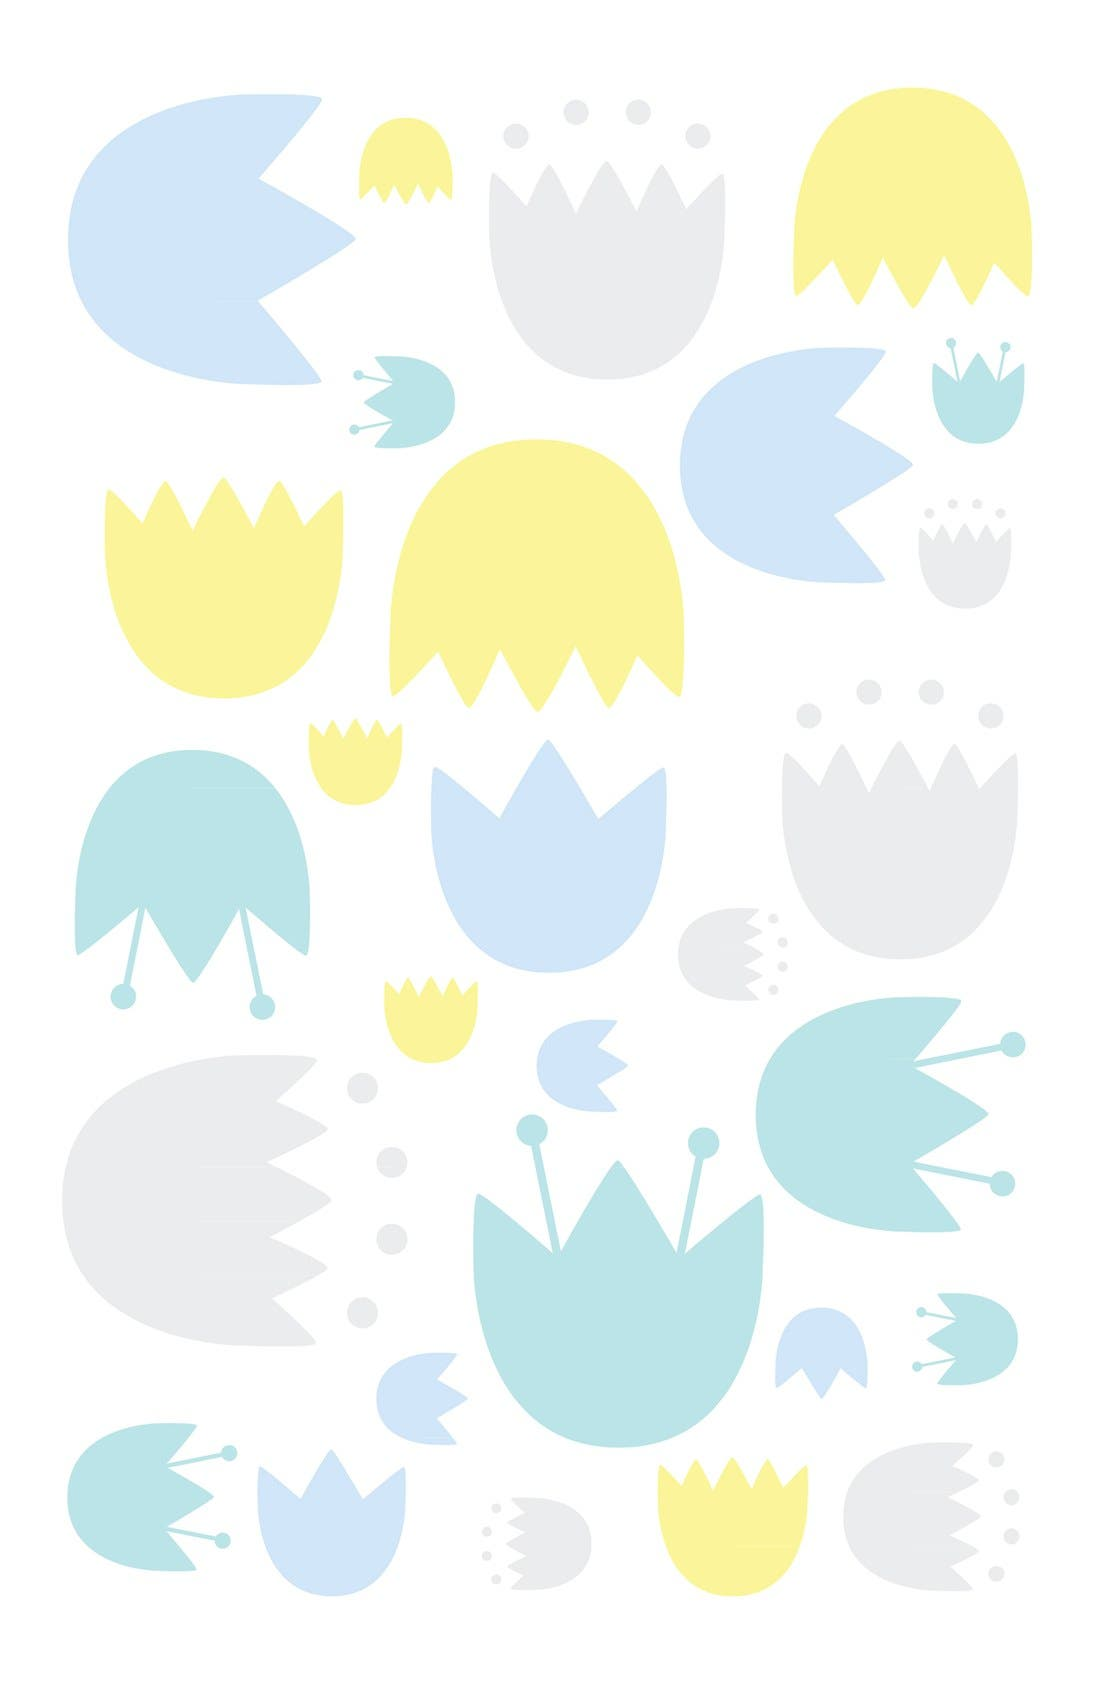 'Garden' Mini Crib Sheet, Changing Pad Cover, Stroller Blanket & Wall Decals,                             Alternate thumbnail 4, color,                             BLUE